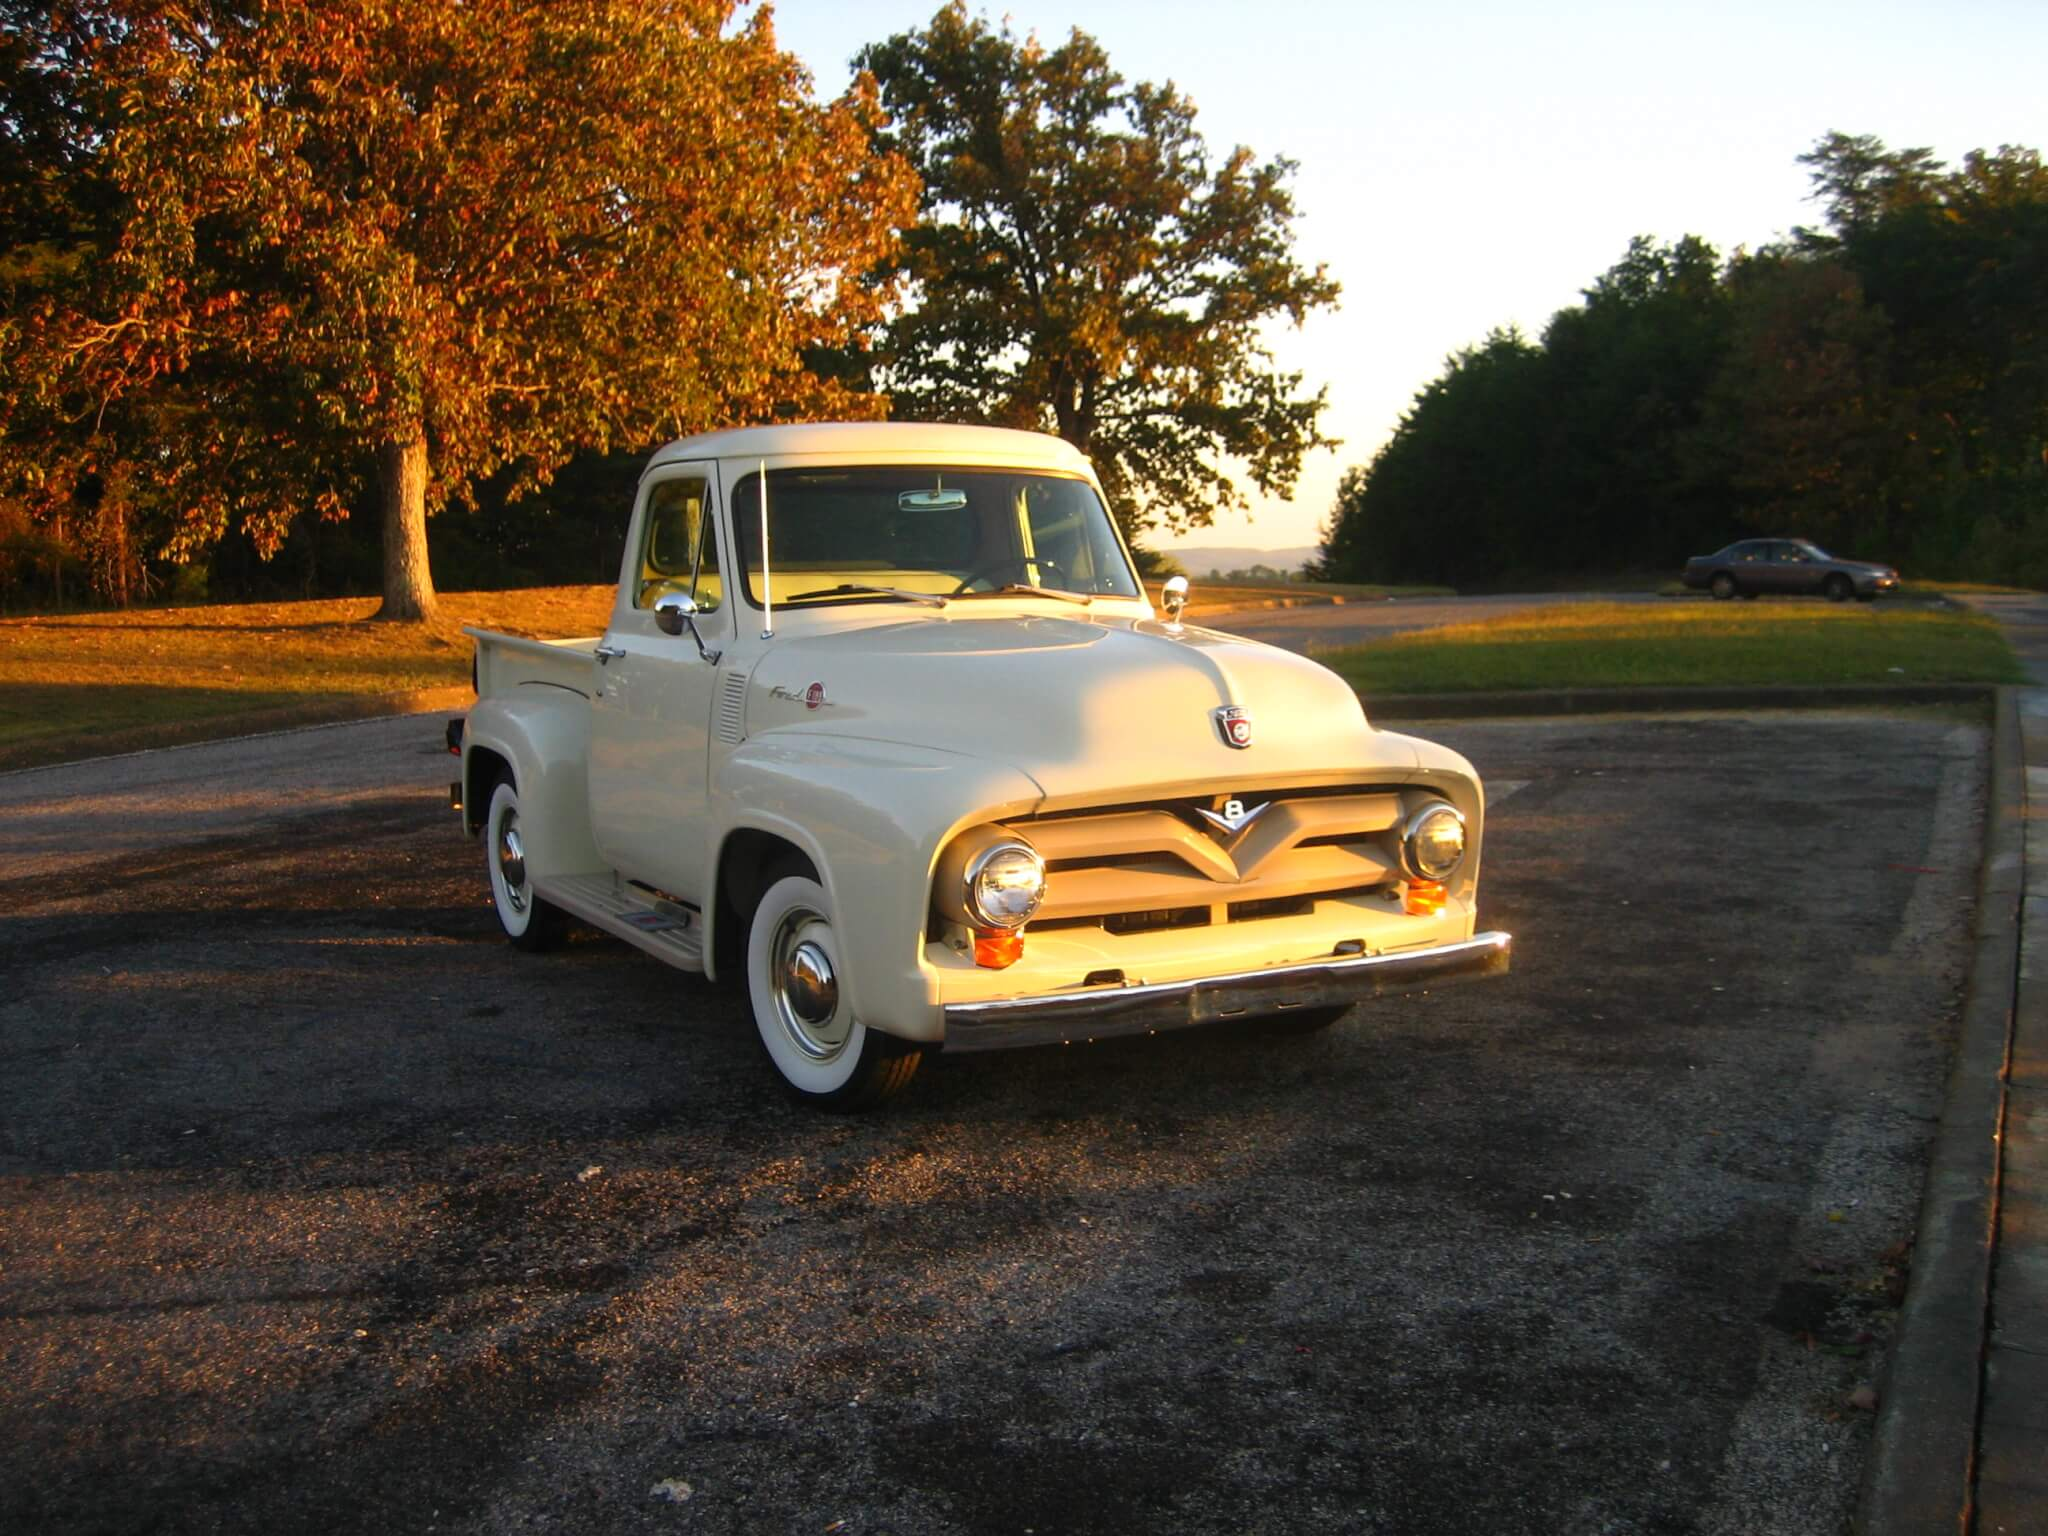 1955 Ford F100 Jay C Lmc Truck Life History A Garage Where The Sits Out Of Sun And Rain On Its Pretty New Coker Wide Whitewalls No Doubt Missing Days When It Was Real Alabama Work